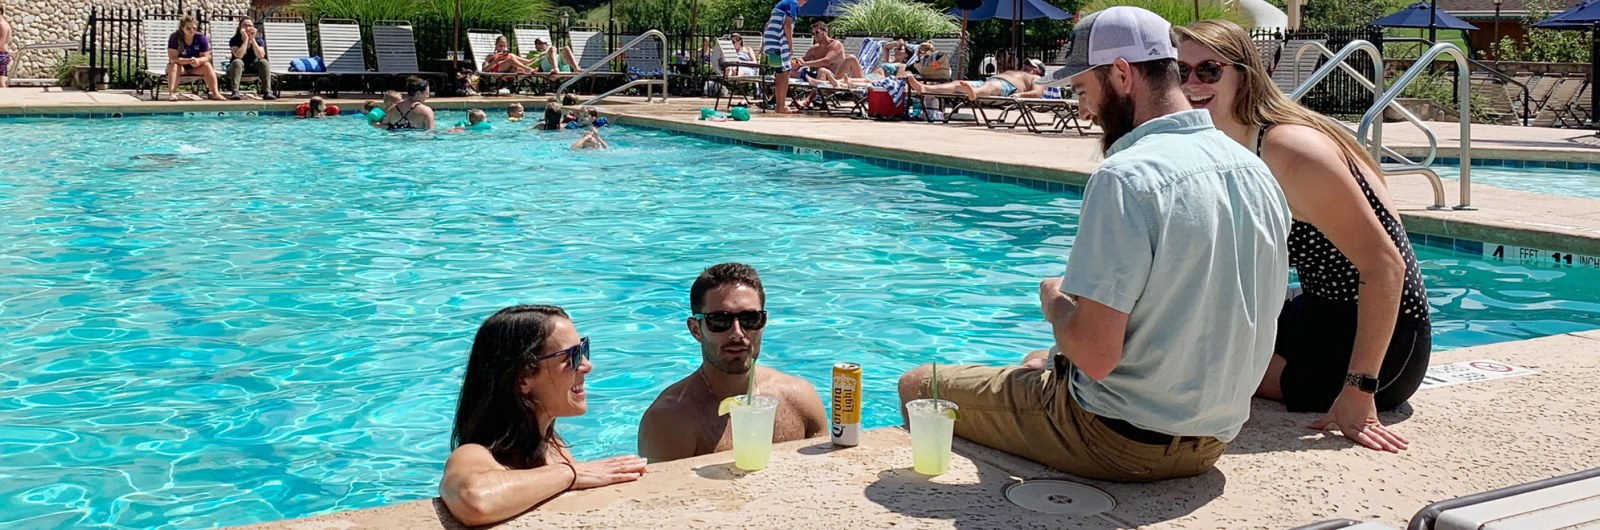 Two couples talking and enjoying drinks in the pool at Holiday Valley in New York